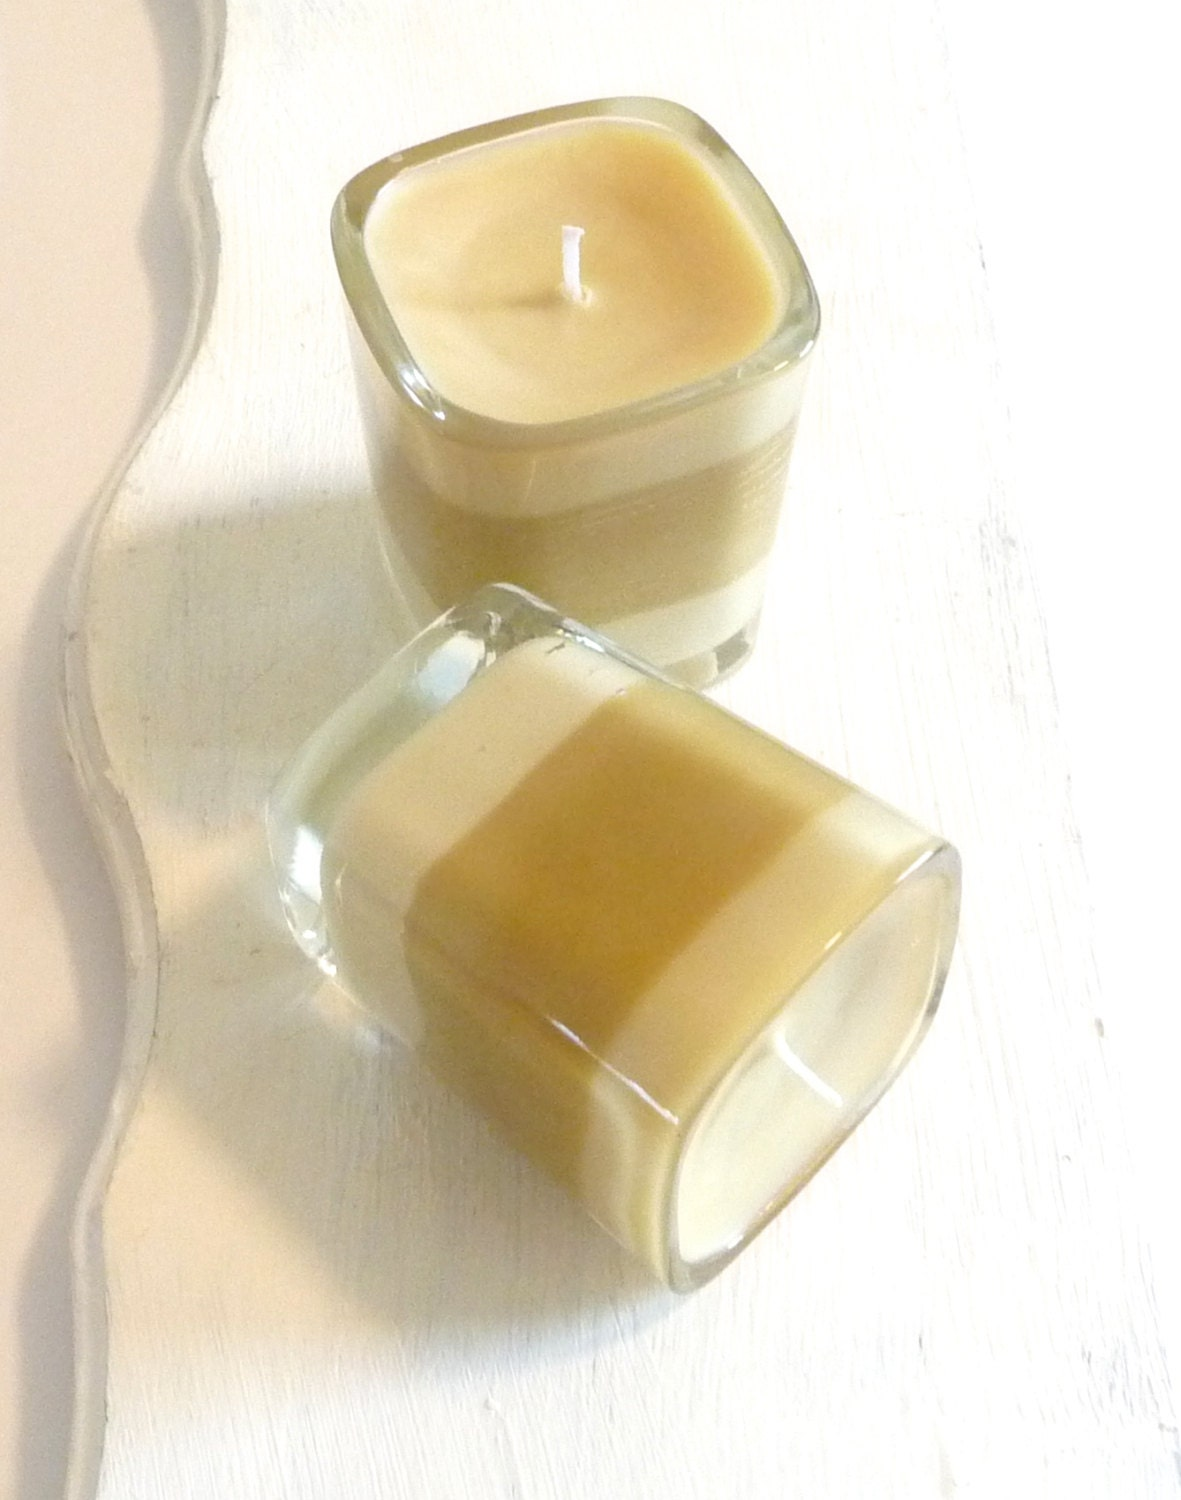 Cafe Mocha Layered Soy Candle in 2 oz Glass Jar, Brown and Beige Candle, Coffee Scented Candle